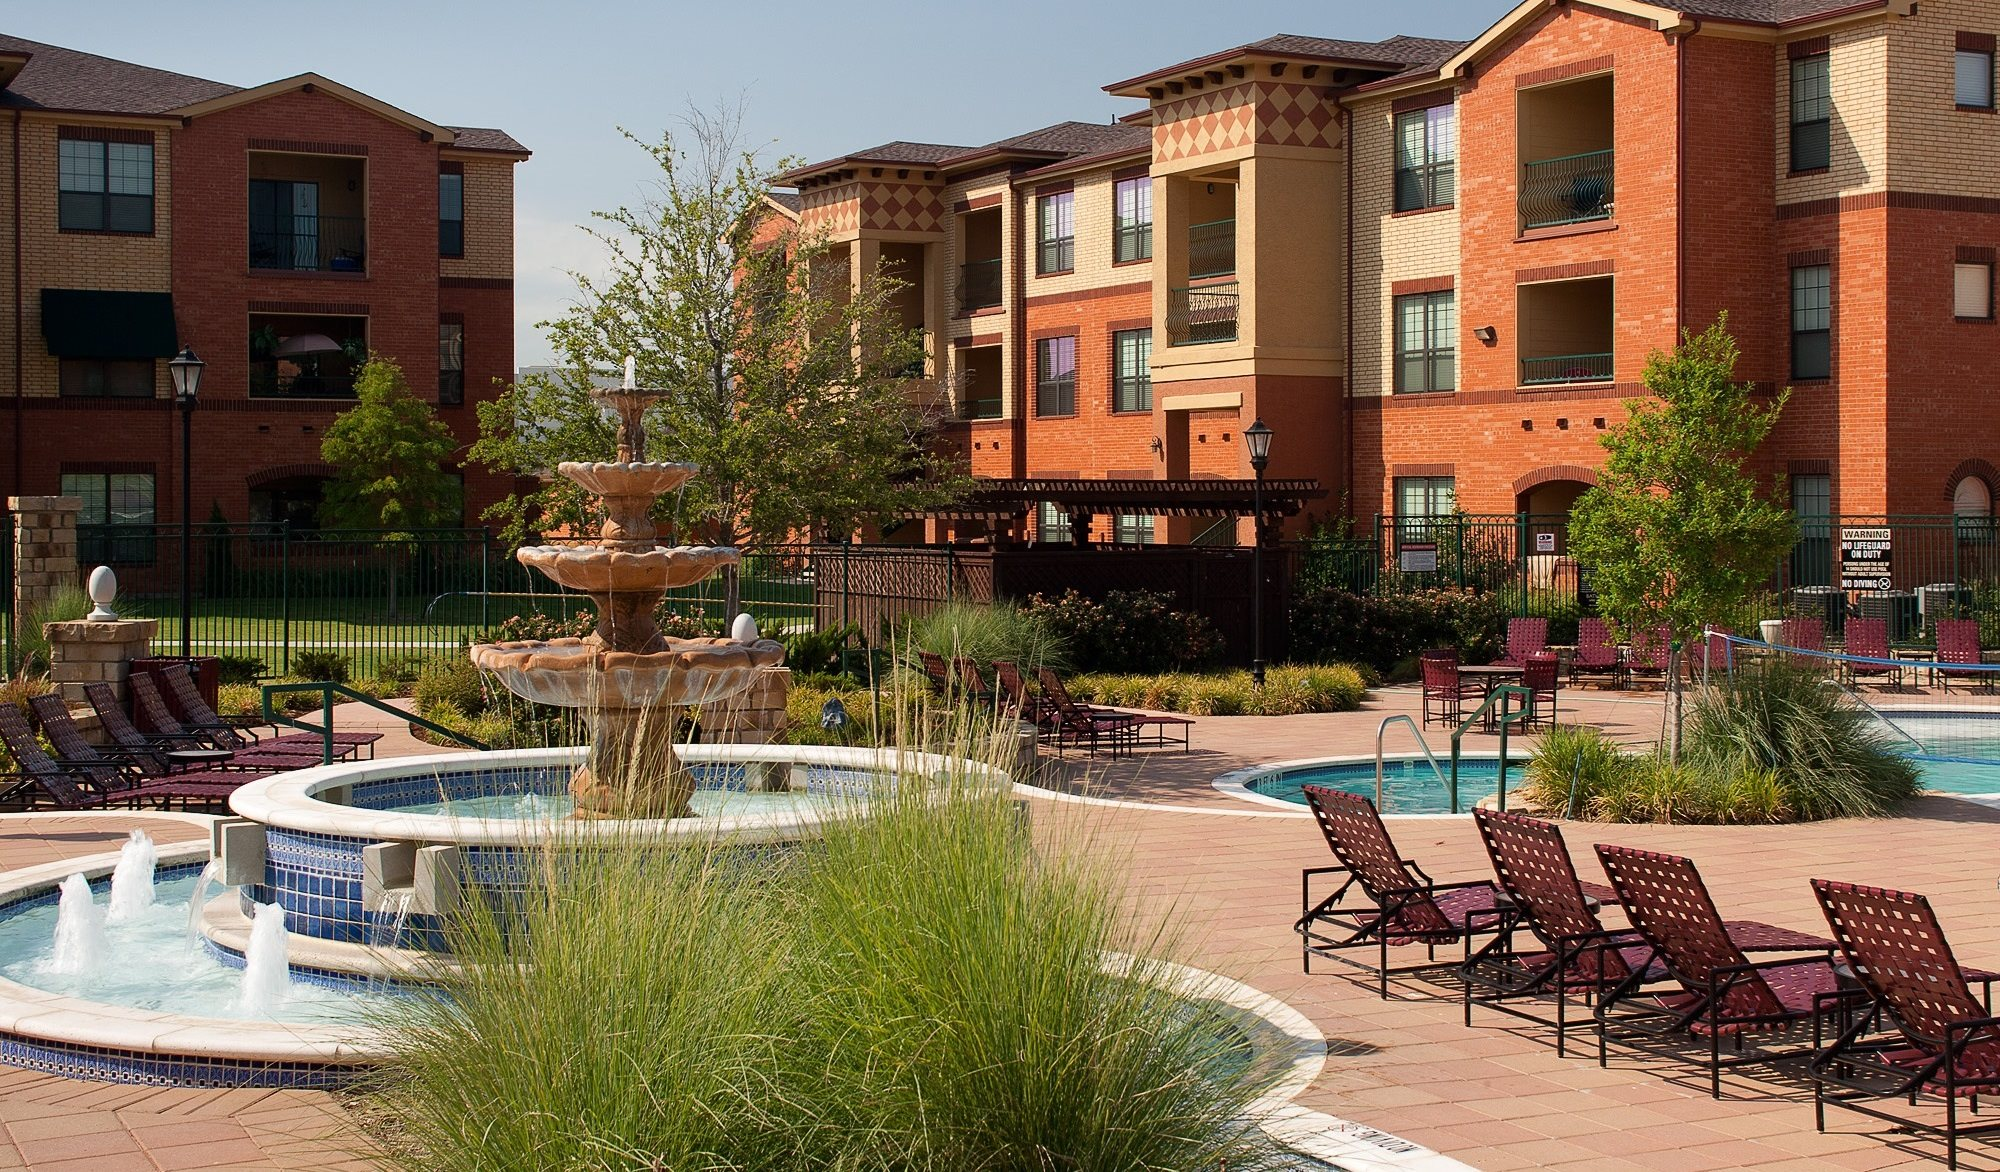 Bella Madera Apartments in Lewisville, Texas